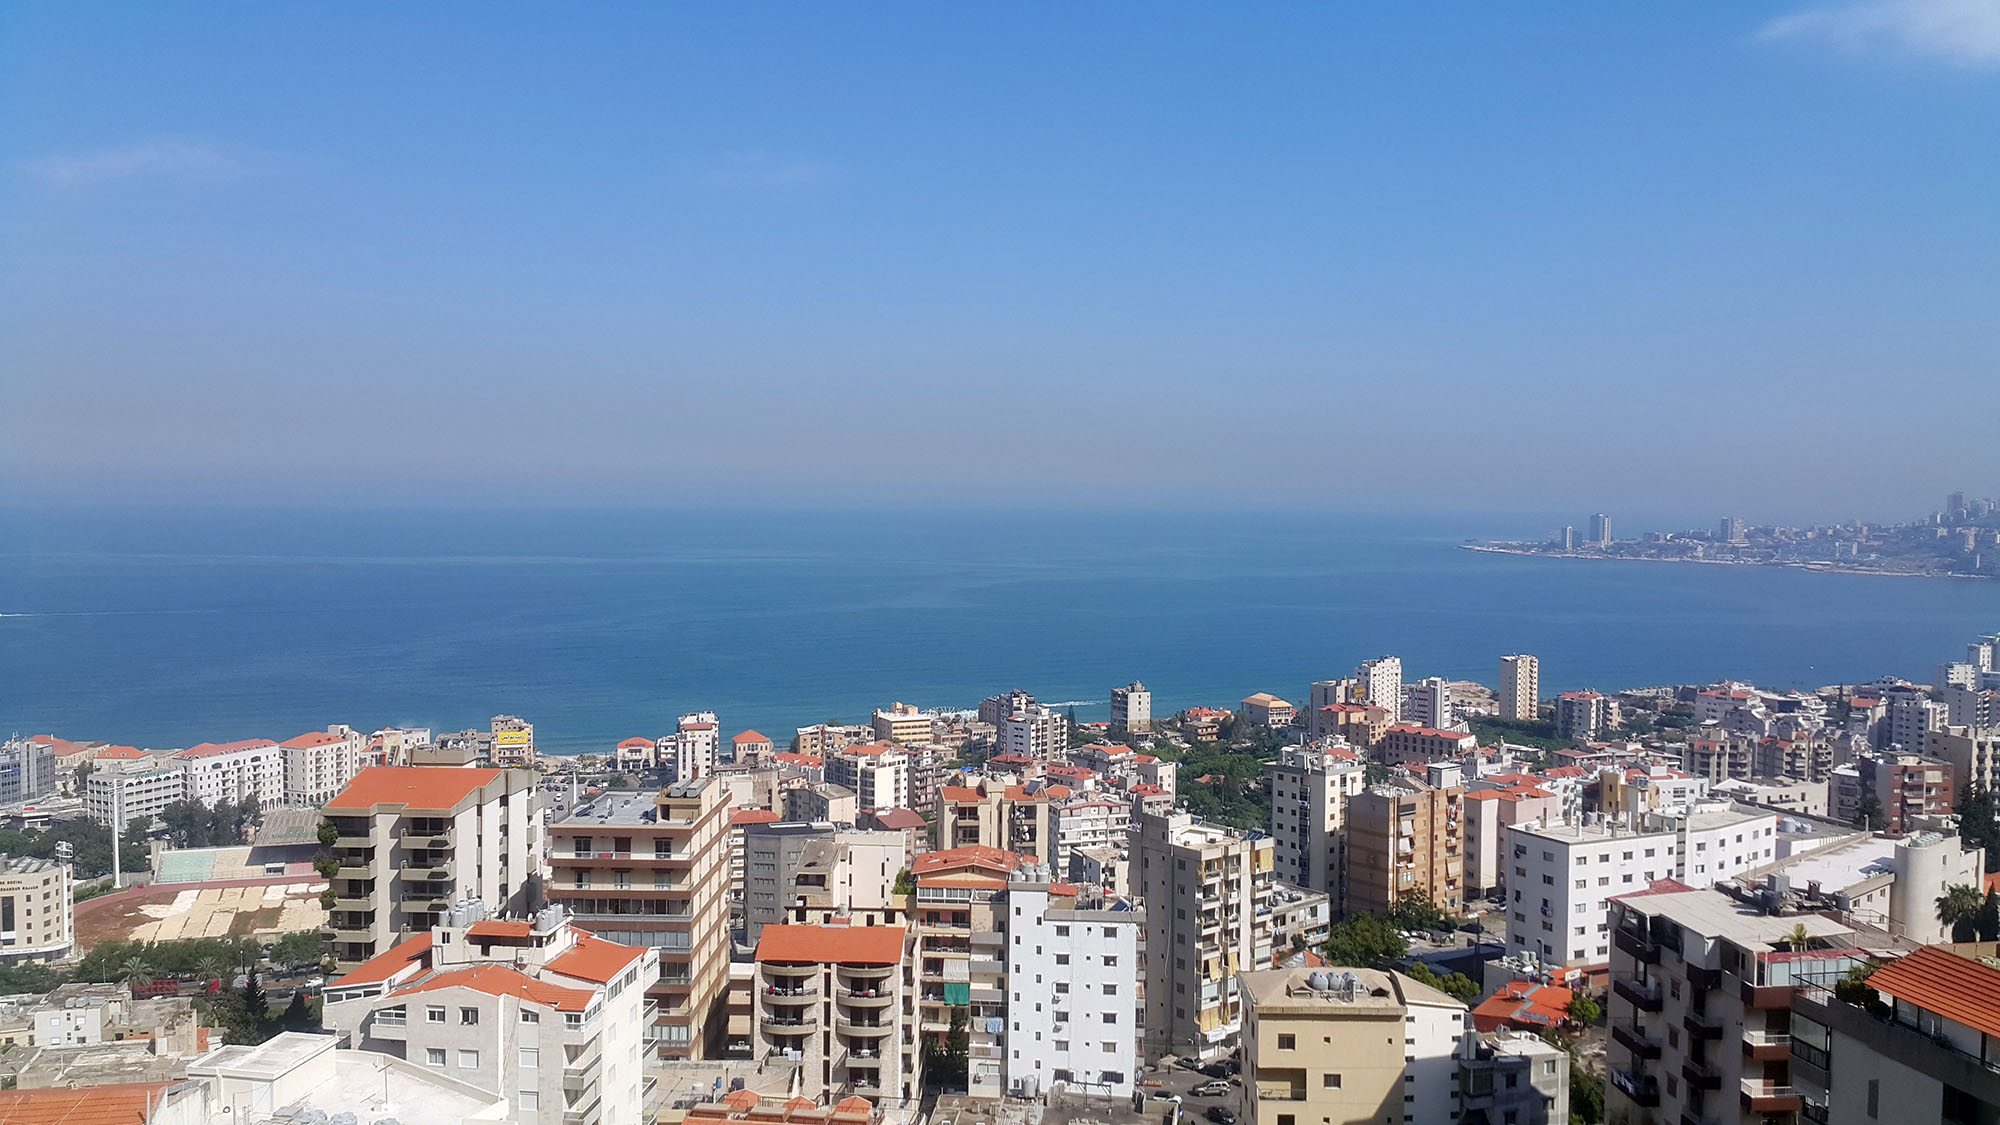 Apartment for sale at Haret Sakher with Unblockable Sea View.